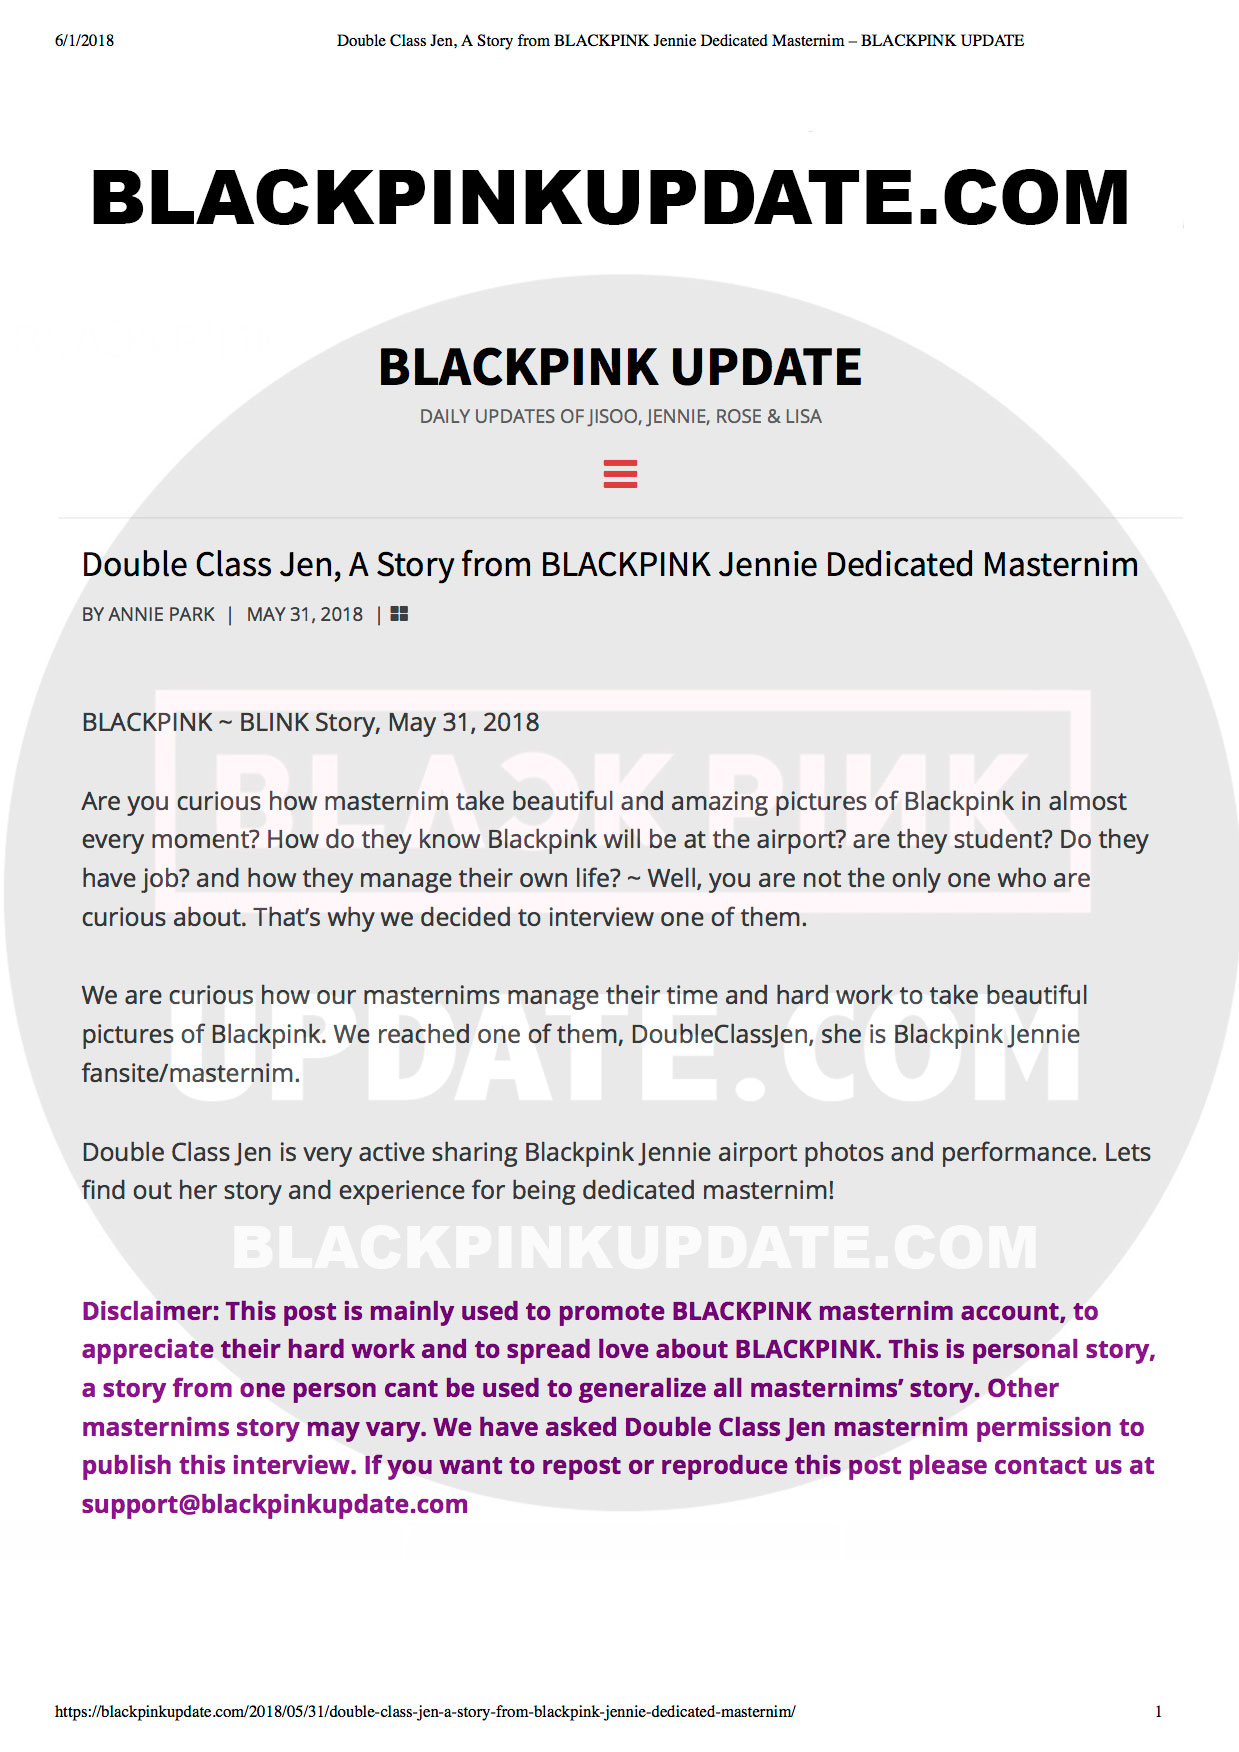 Double Class Jen, A Story from BLACKPINK Jennie Dedicated Masternim